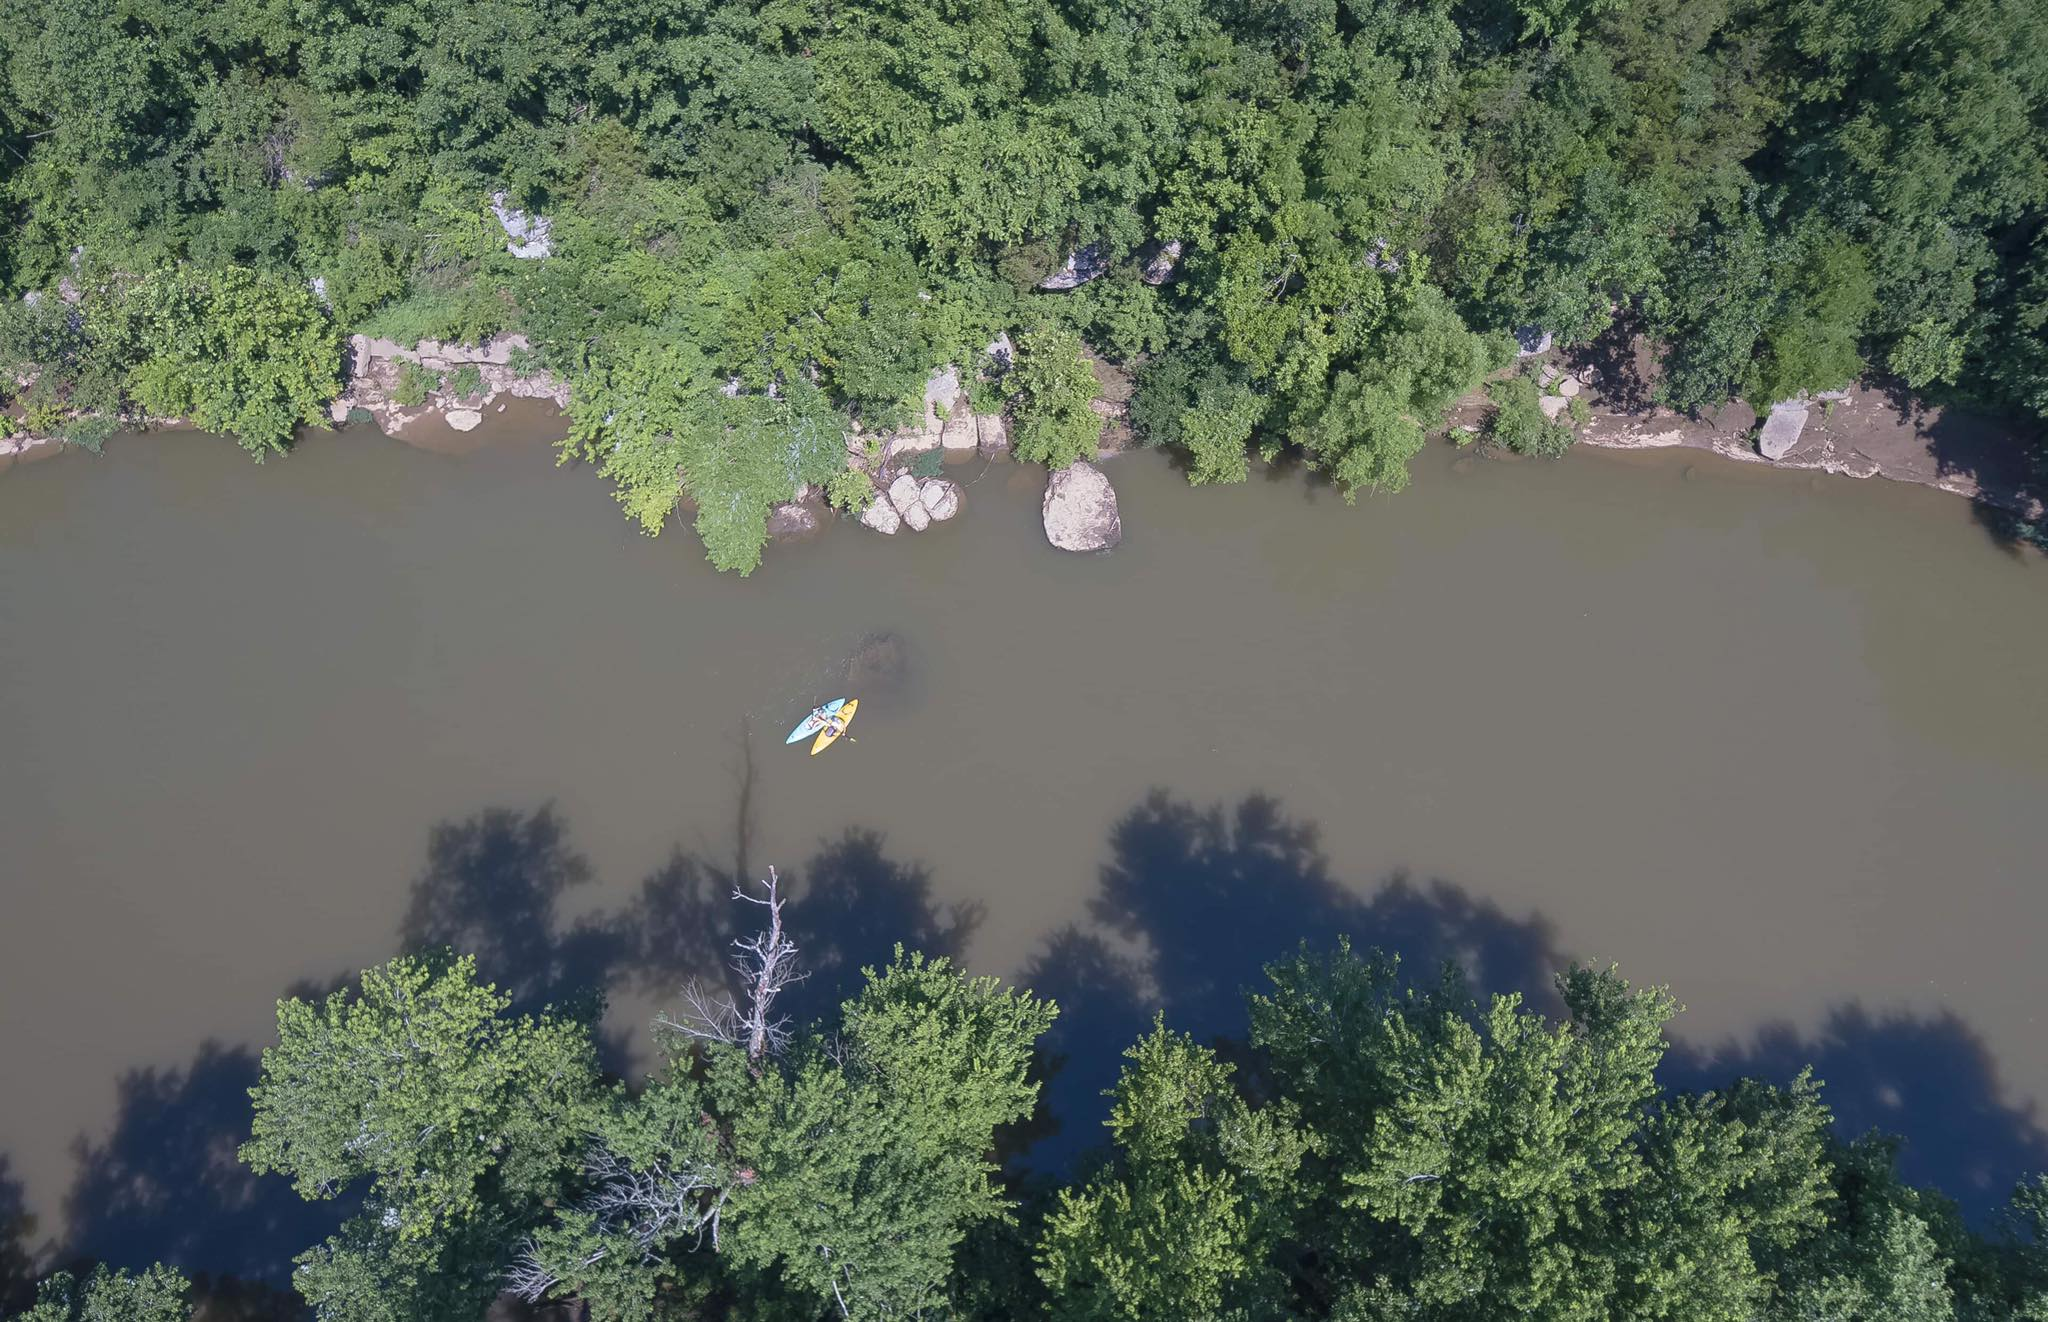 Rent A Canoe On The Stunning, Scenic Duck River In Tennessee With River Rat's Canoe Rental